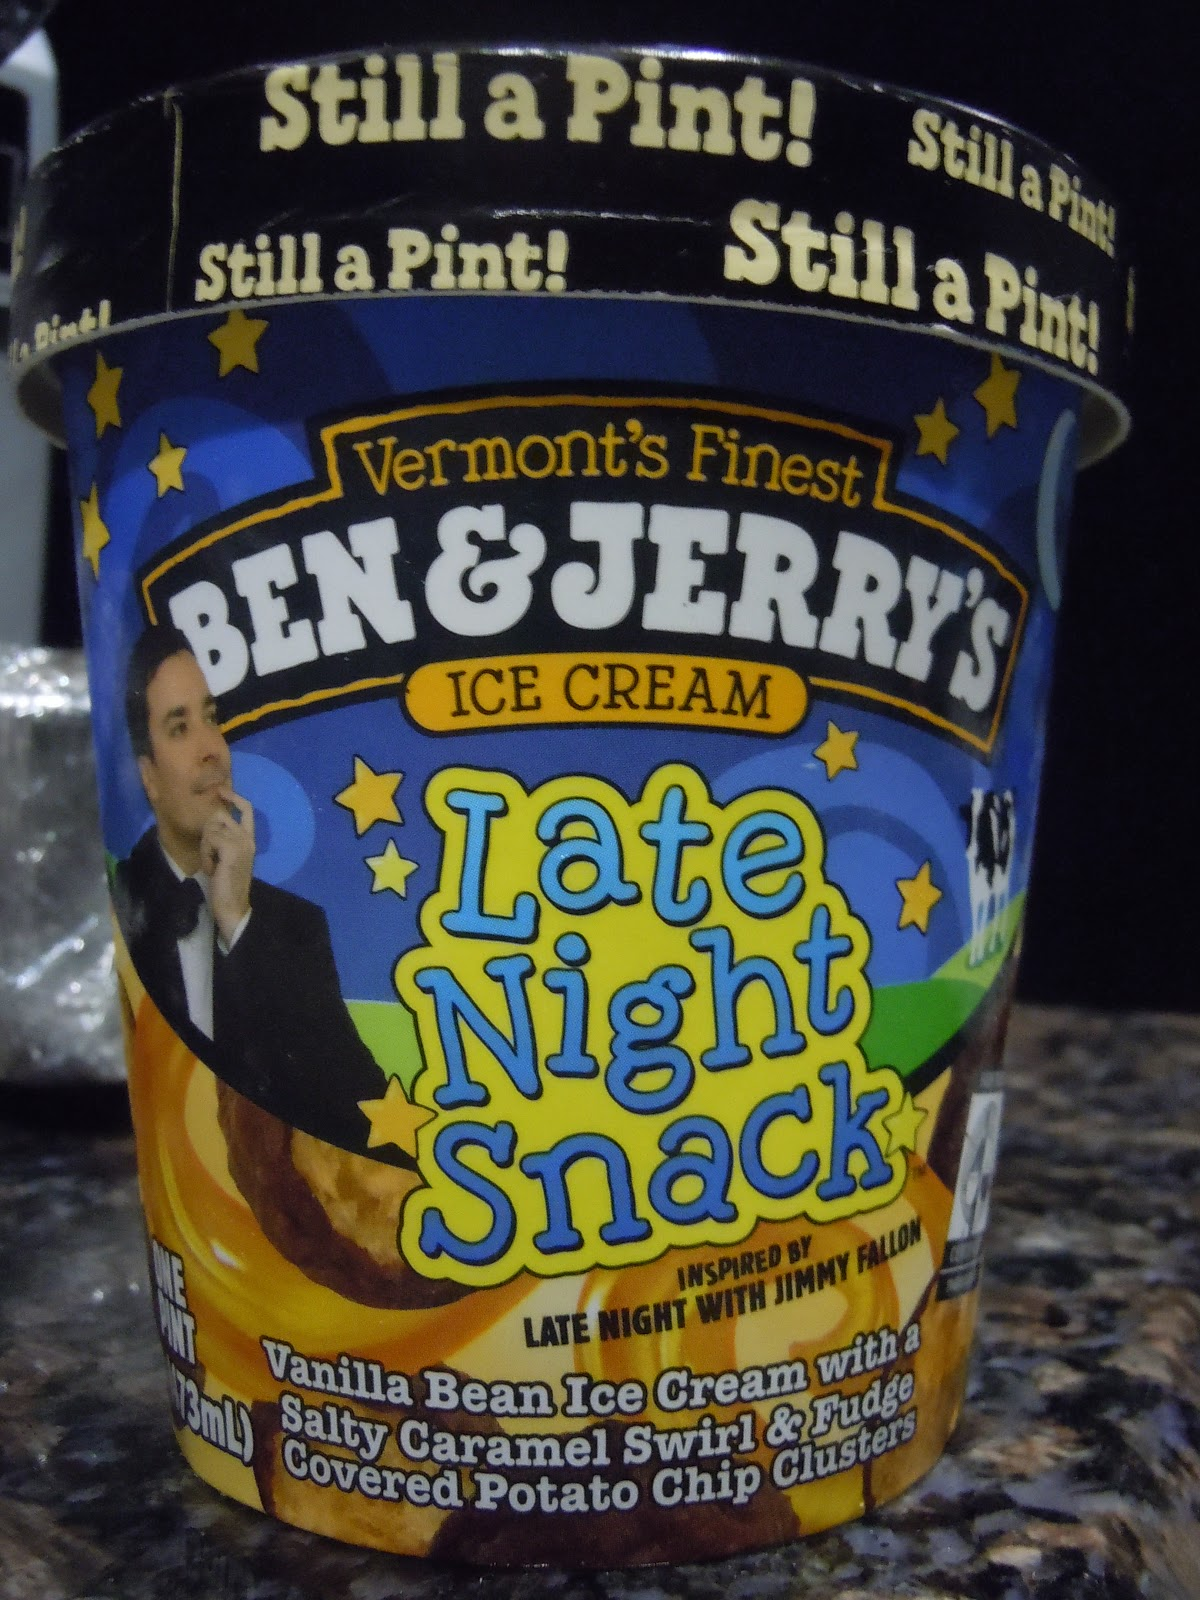 this is jimmy fallon s flavor apparently late night snack